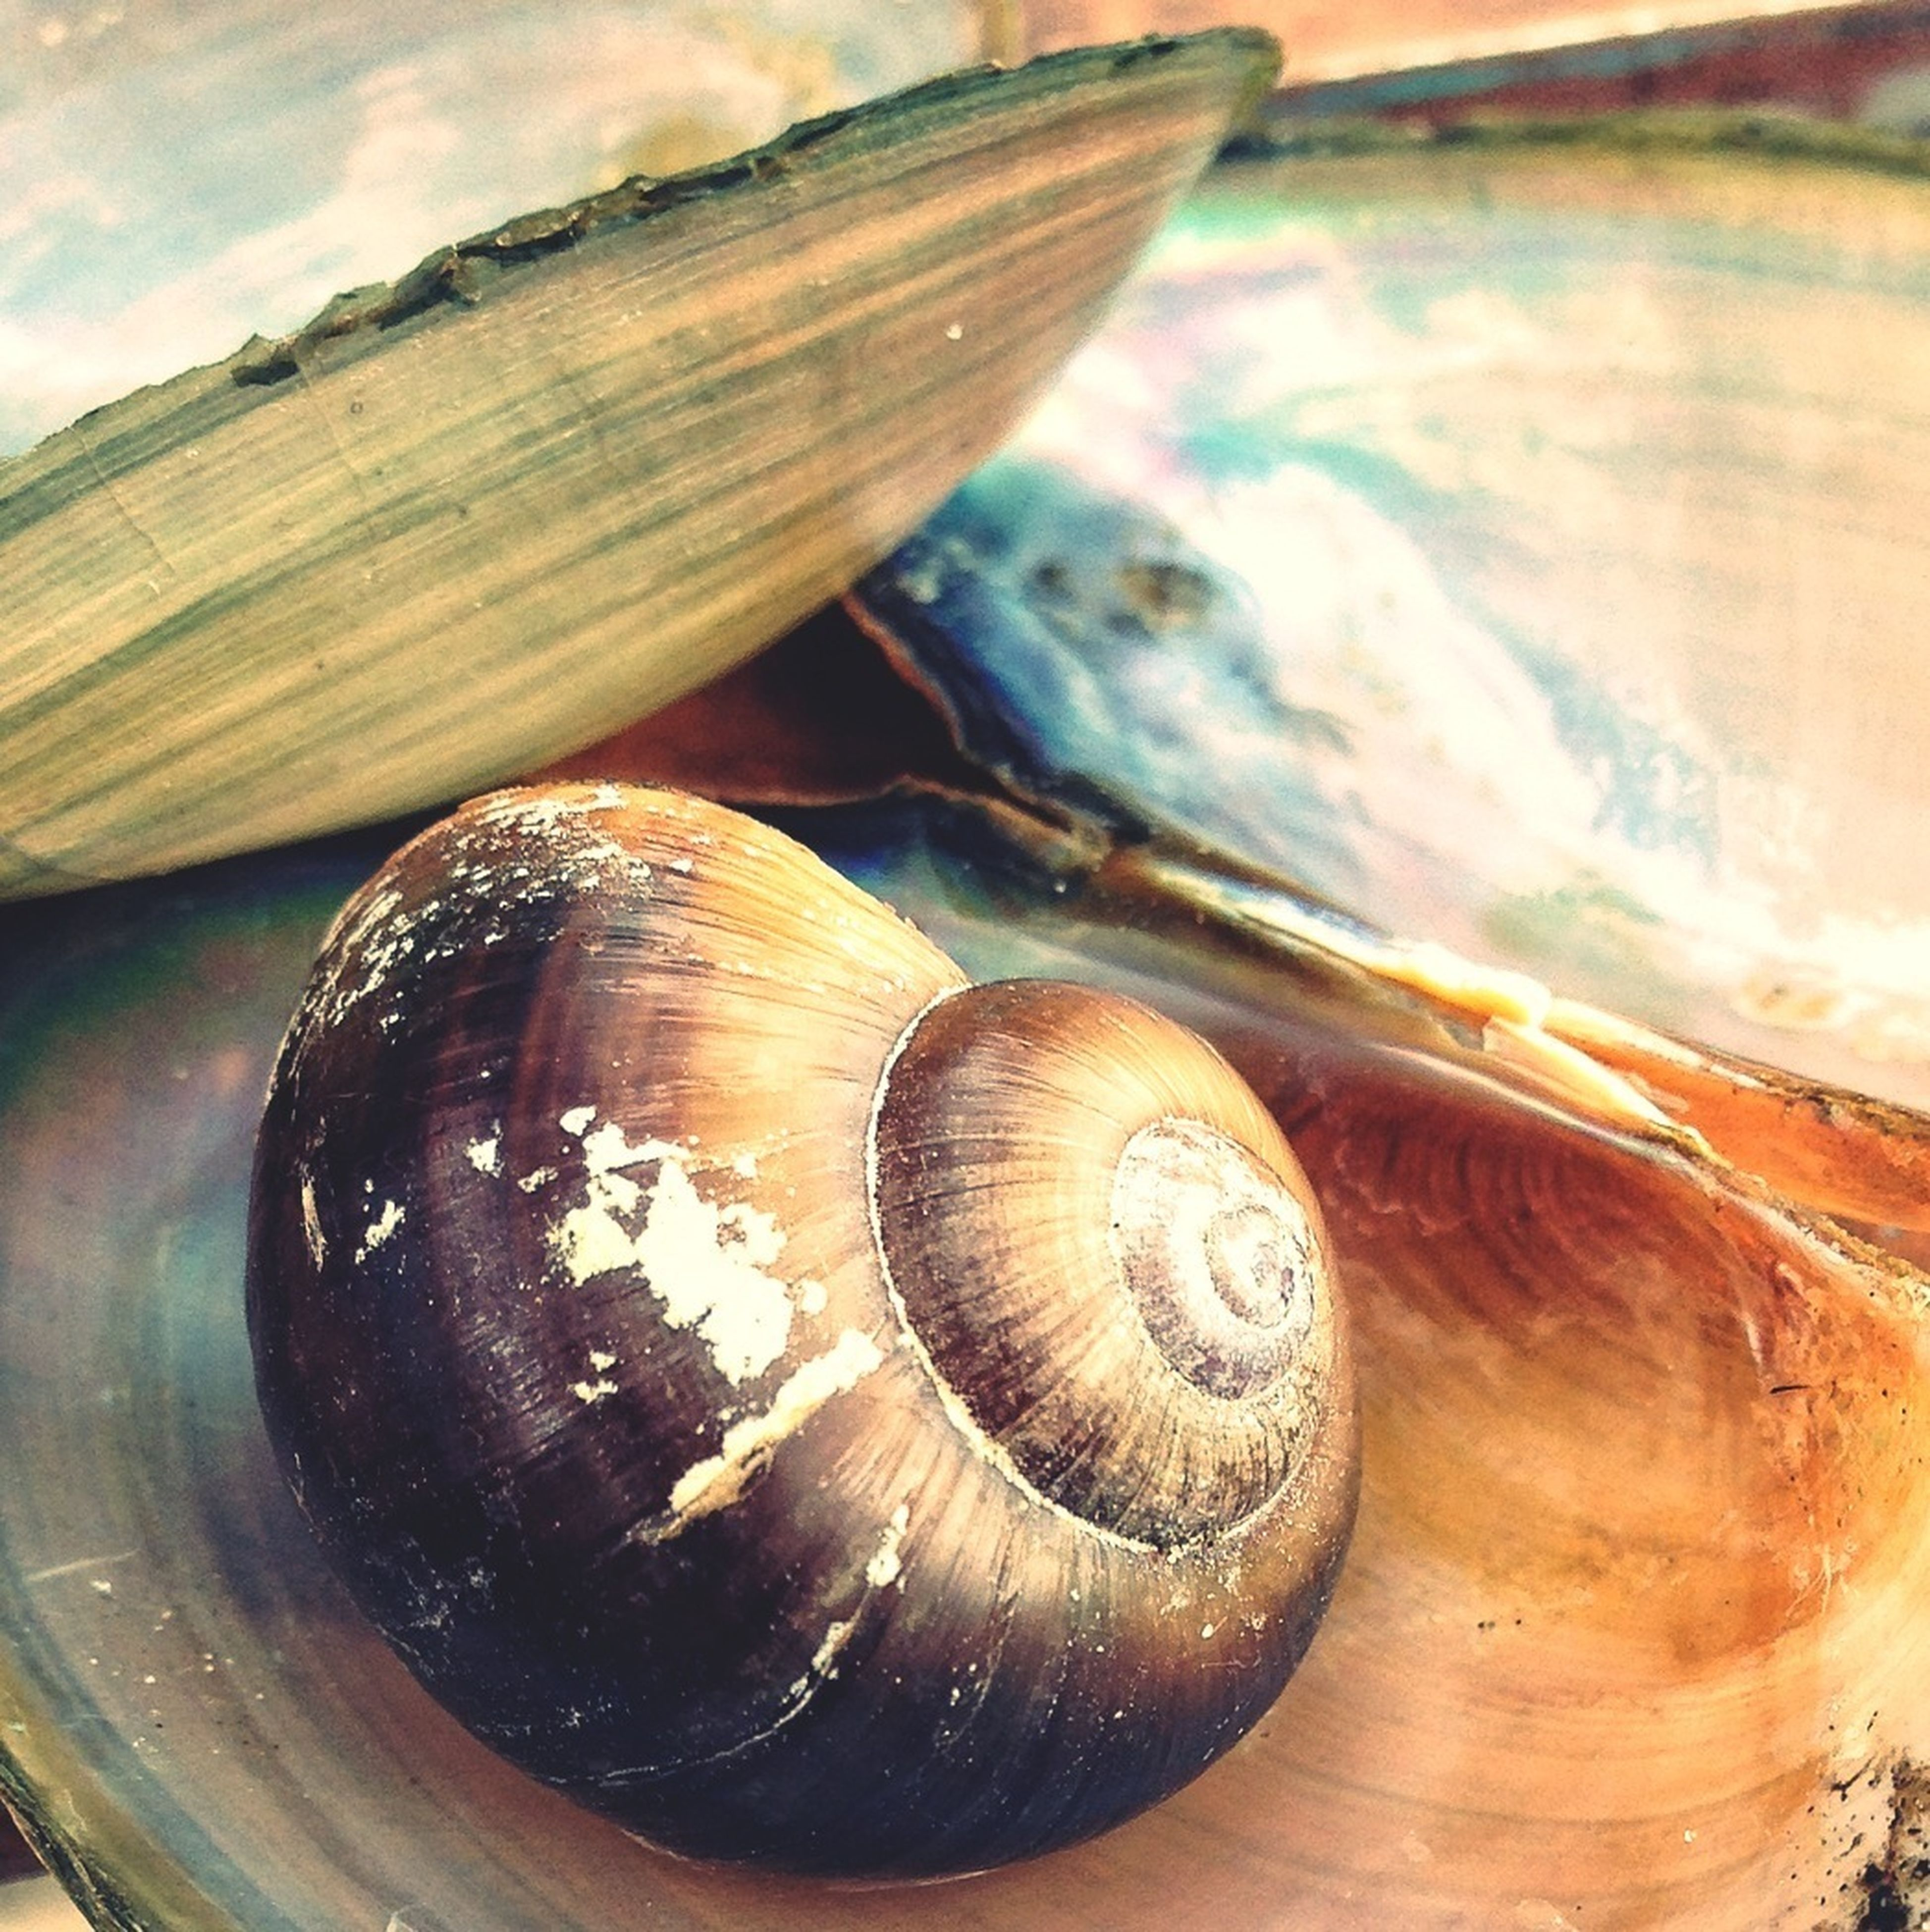 close-up, wood - material, animal shell, snail, shell, wooden, high angle view, focus on foreground, still life, seashell, no people, wood, day, nature, outdoors, table, textured, pattern, natural pattern, log